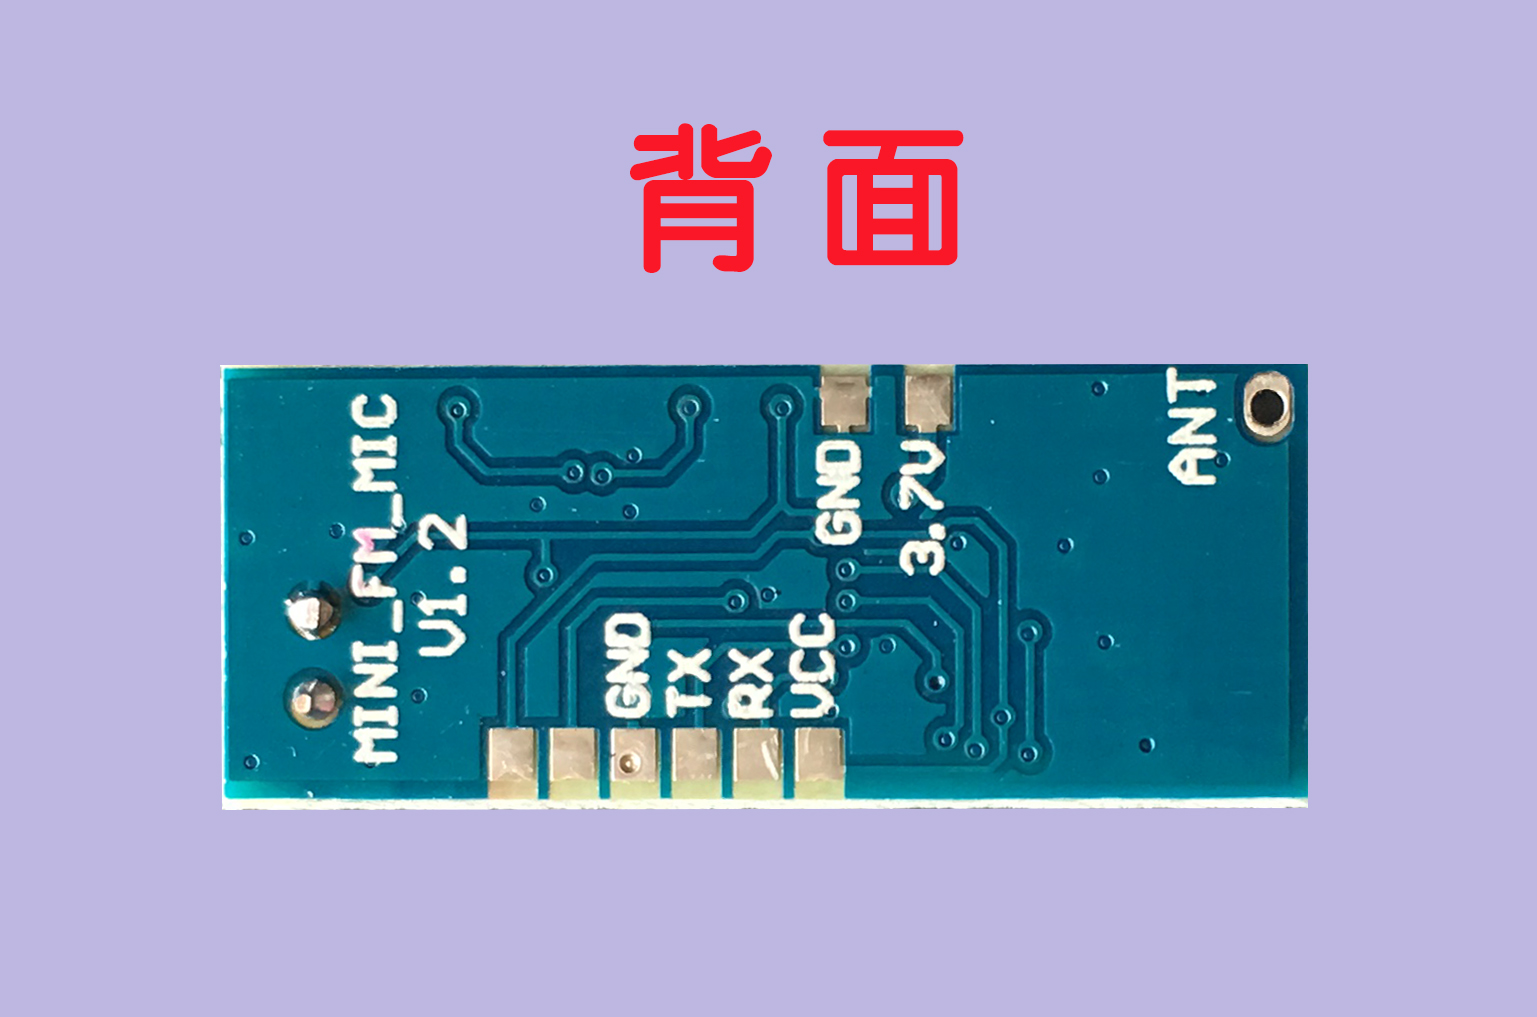 Mini Fm Wireless Microphone Module Miniature Transmitter 9v Circuit Wiring Diagrams In Air Conditioner Parts From Home Appliances On Alibaba Group